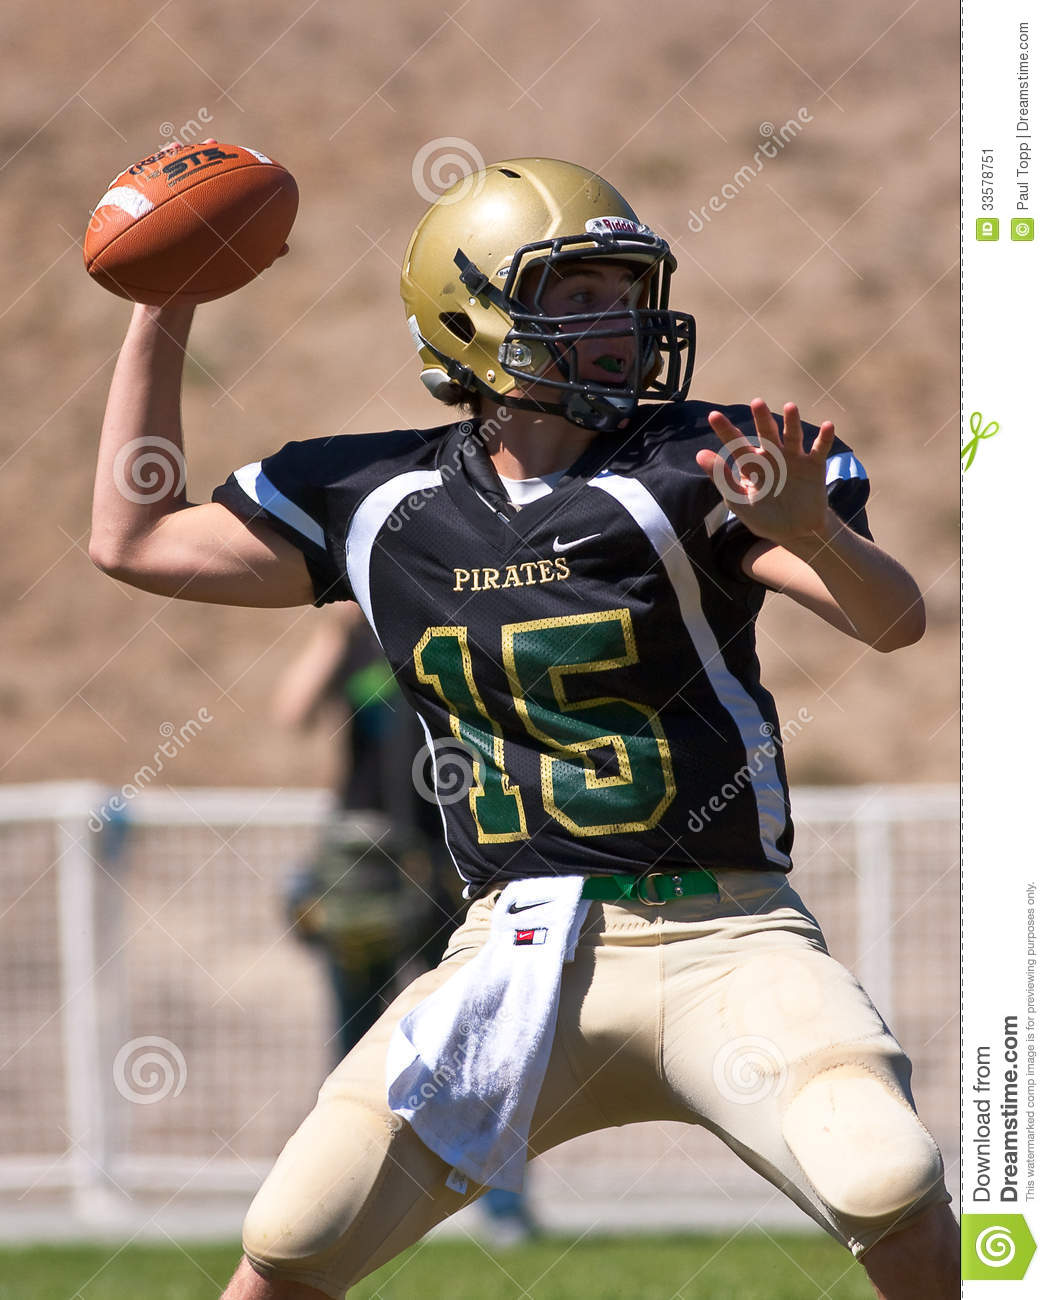 football player from Harbor High School in California, throws a pass ...